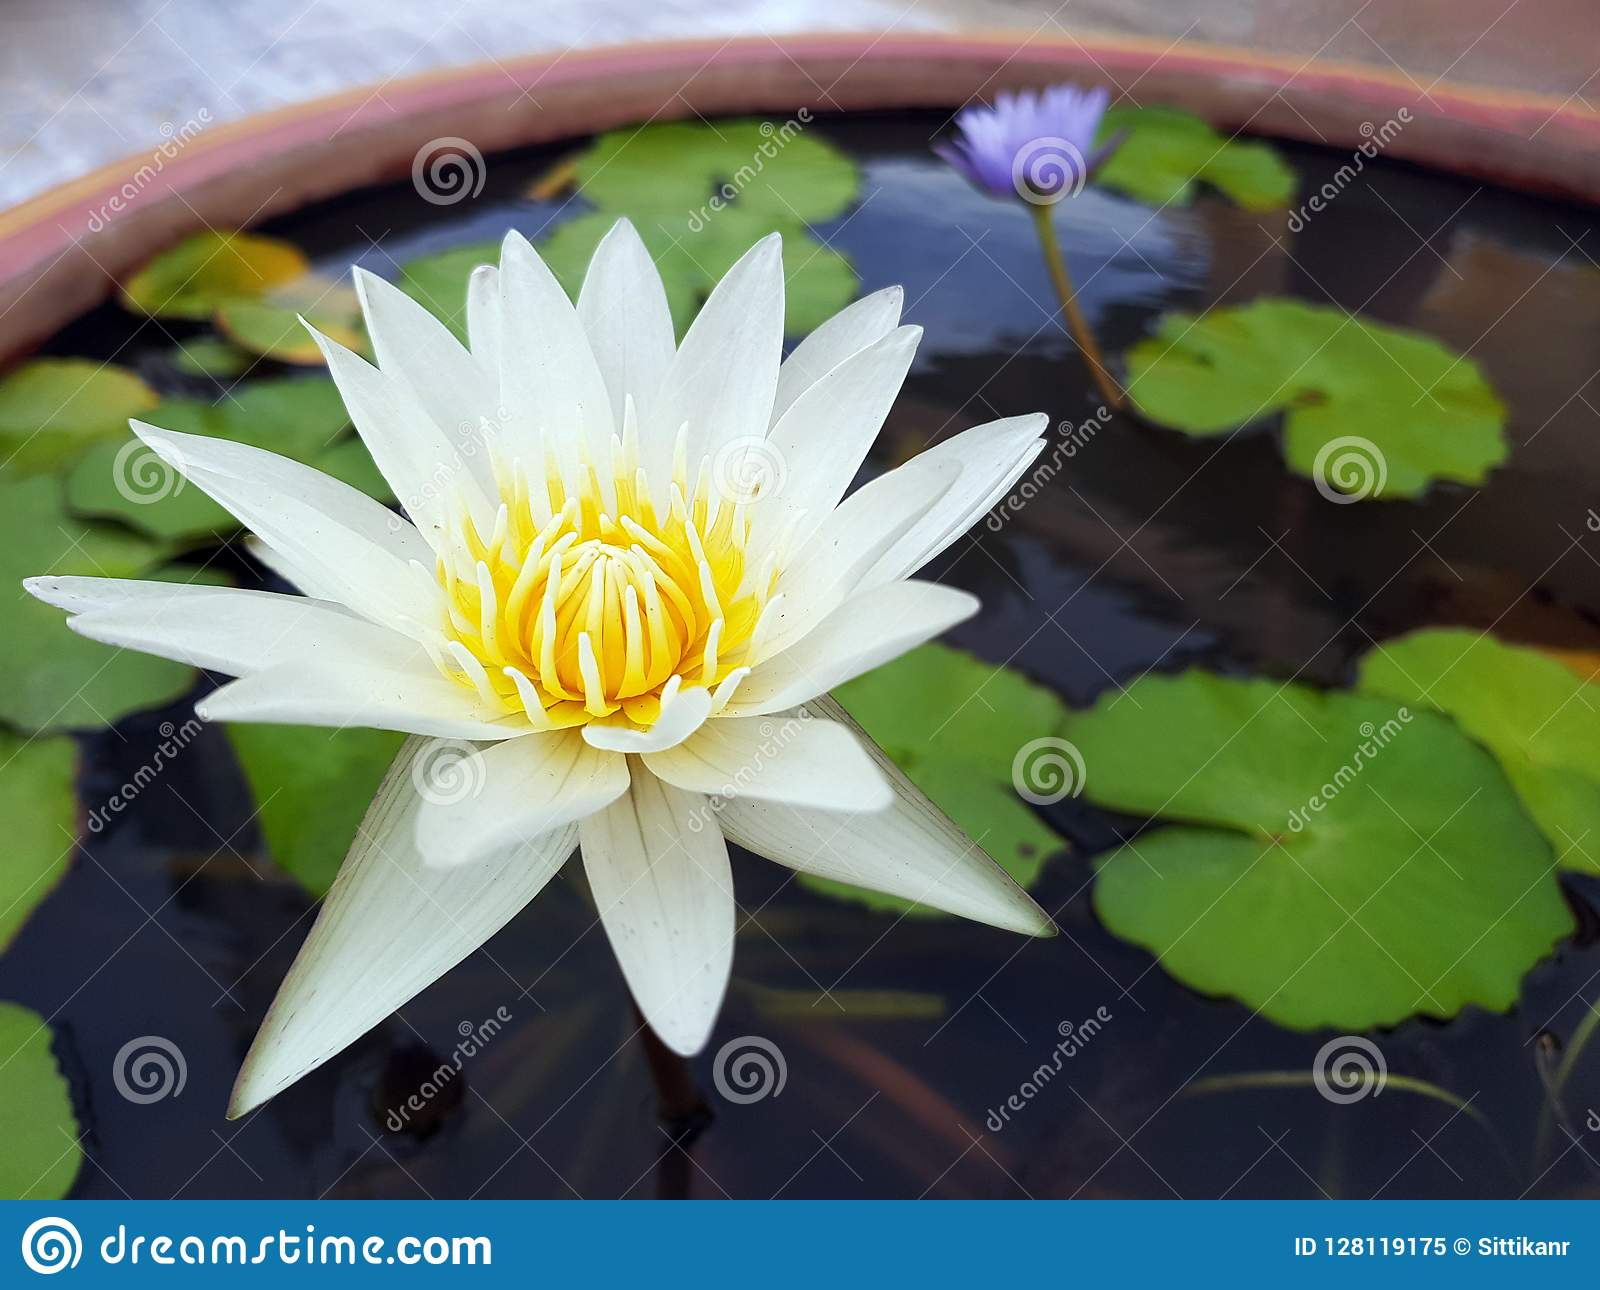 Lotus Flowerwater Lilyblossoming Lily Flower With Green Leaves